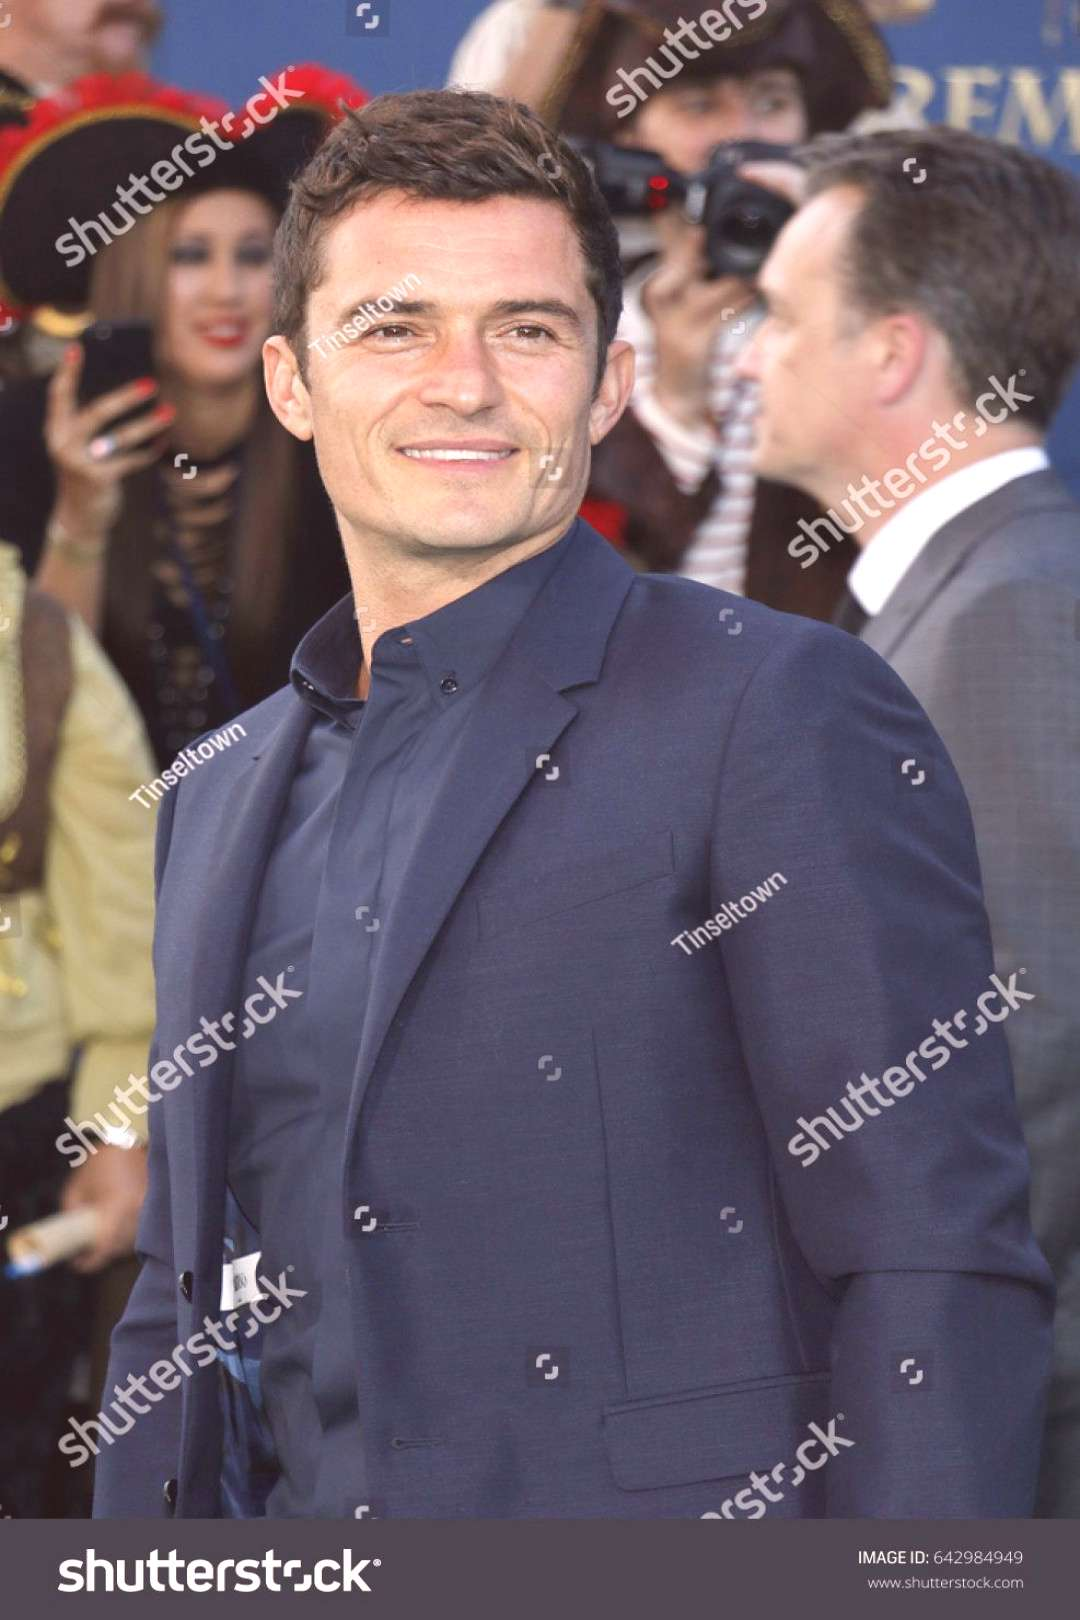 Orlando Bloom at the U.S. premiere of Pirates Of The Caribbean Dead Men Tell No Tales held at th